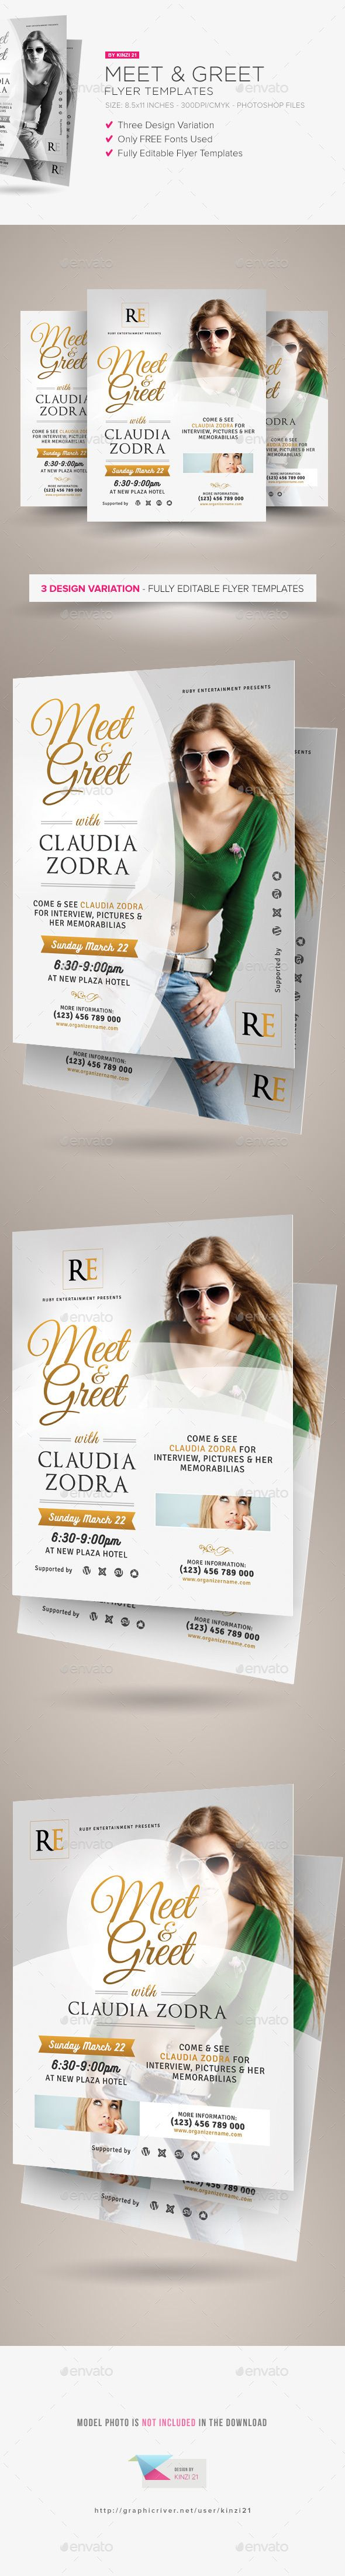 meet greet flyer templates a flyer template set is perfect for